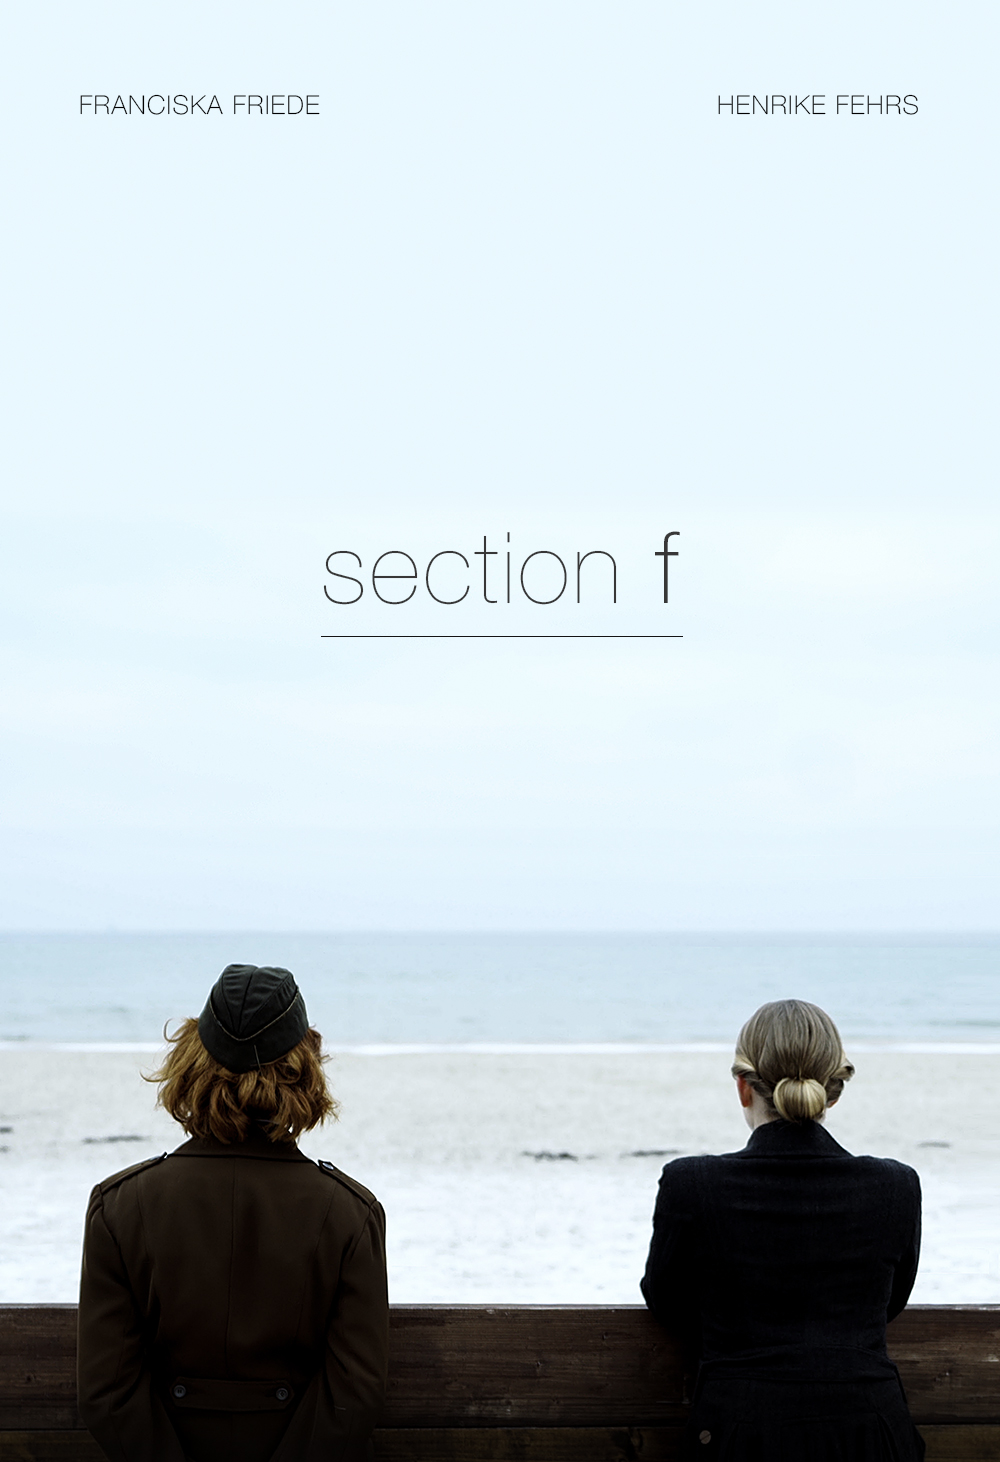 Henrike Fehrs and Franciska Friede in Section F (2019)